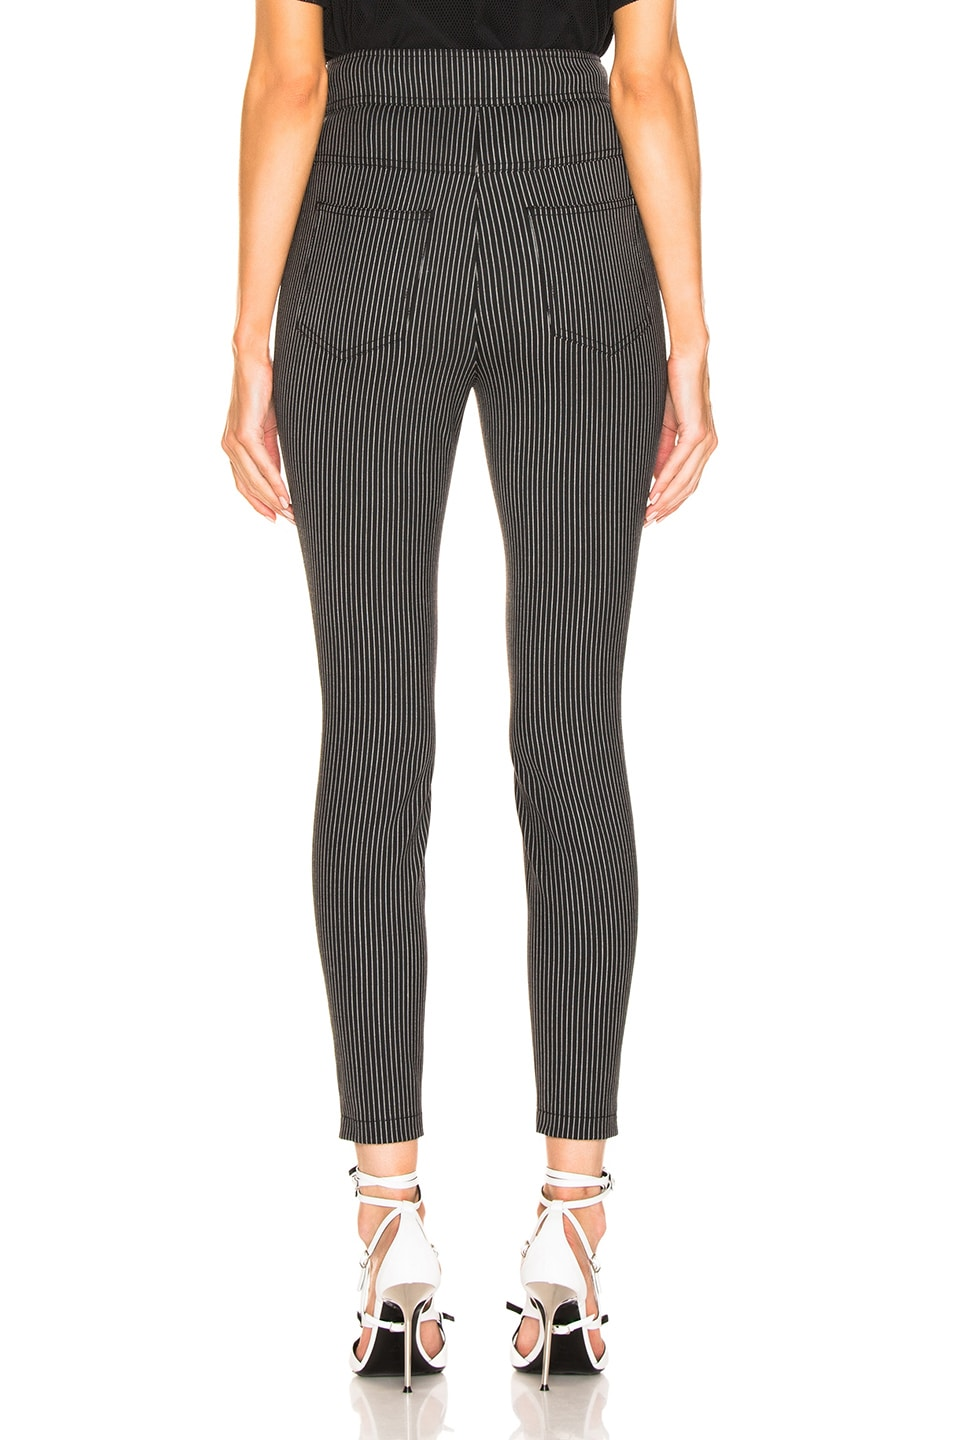 Image 3 of Alexander Wang High Waisted Snapdetail Legging in Black